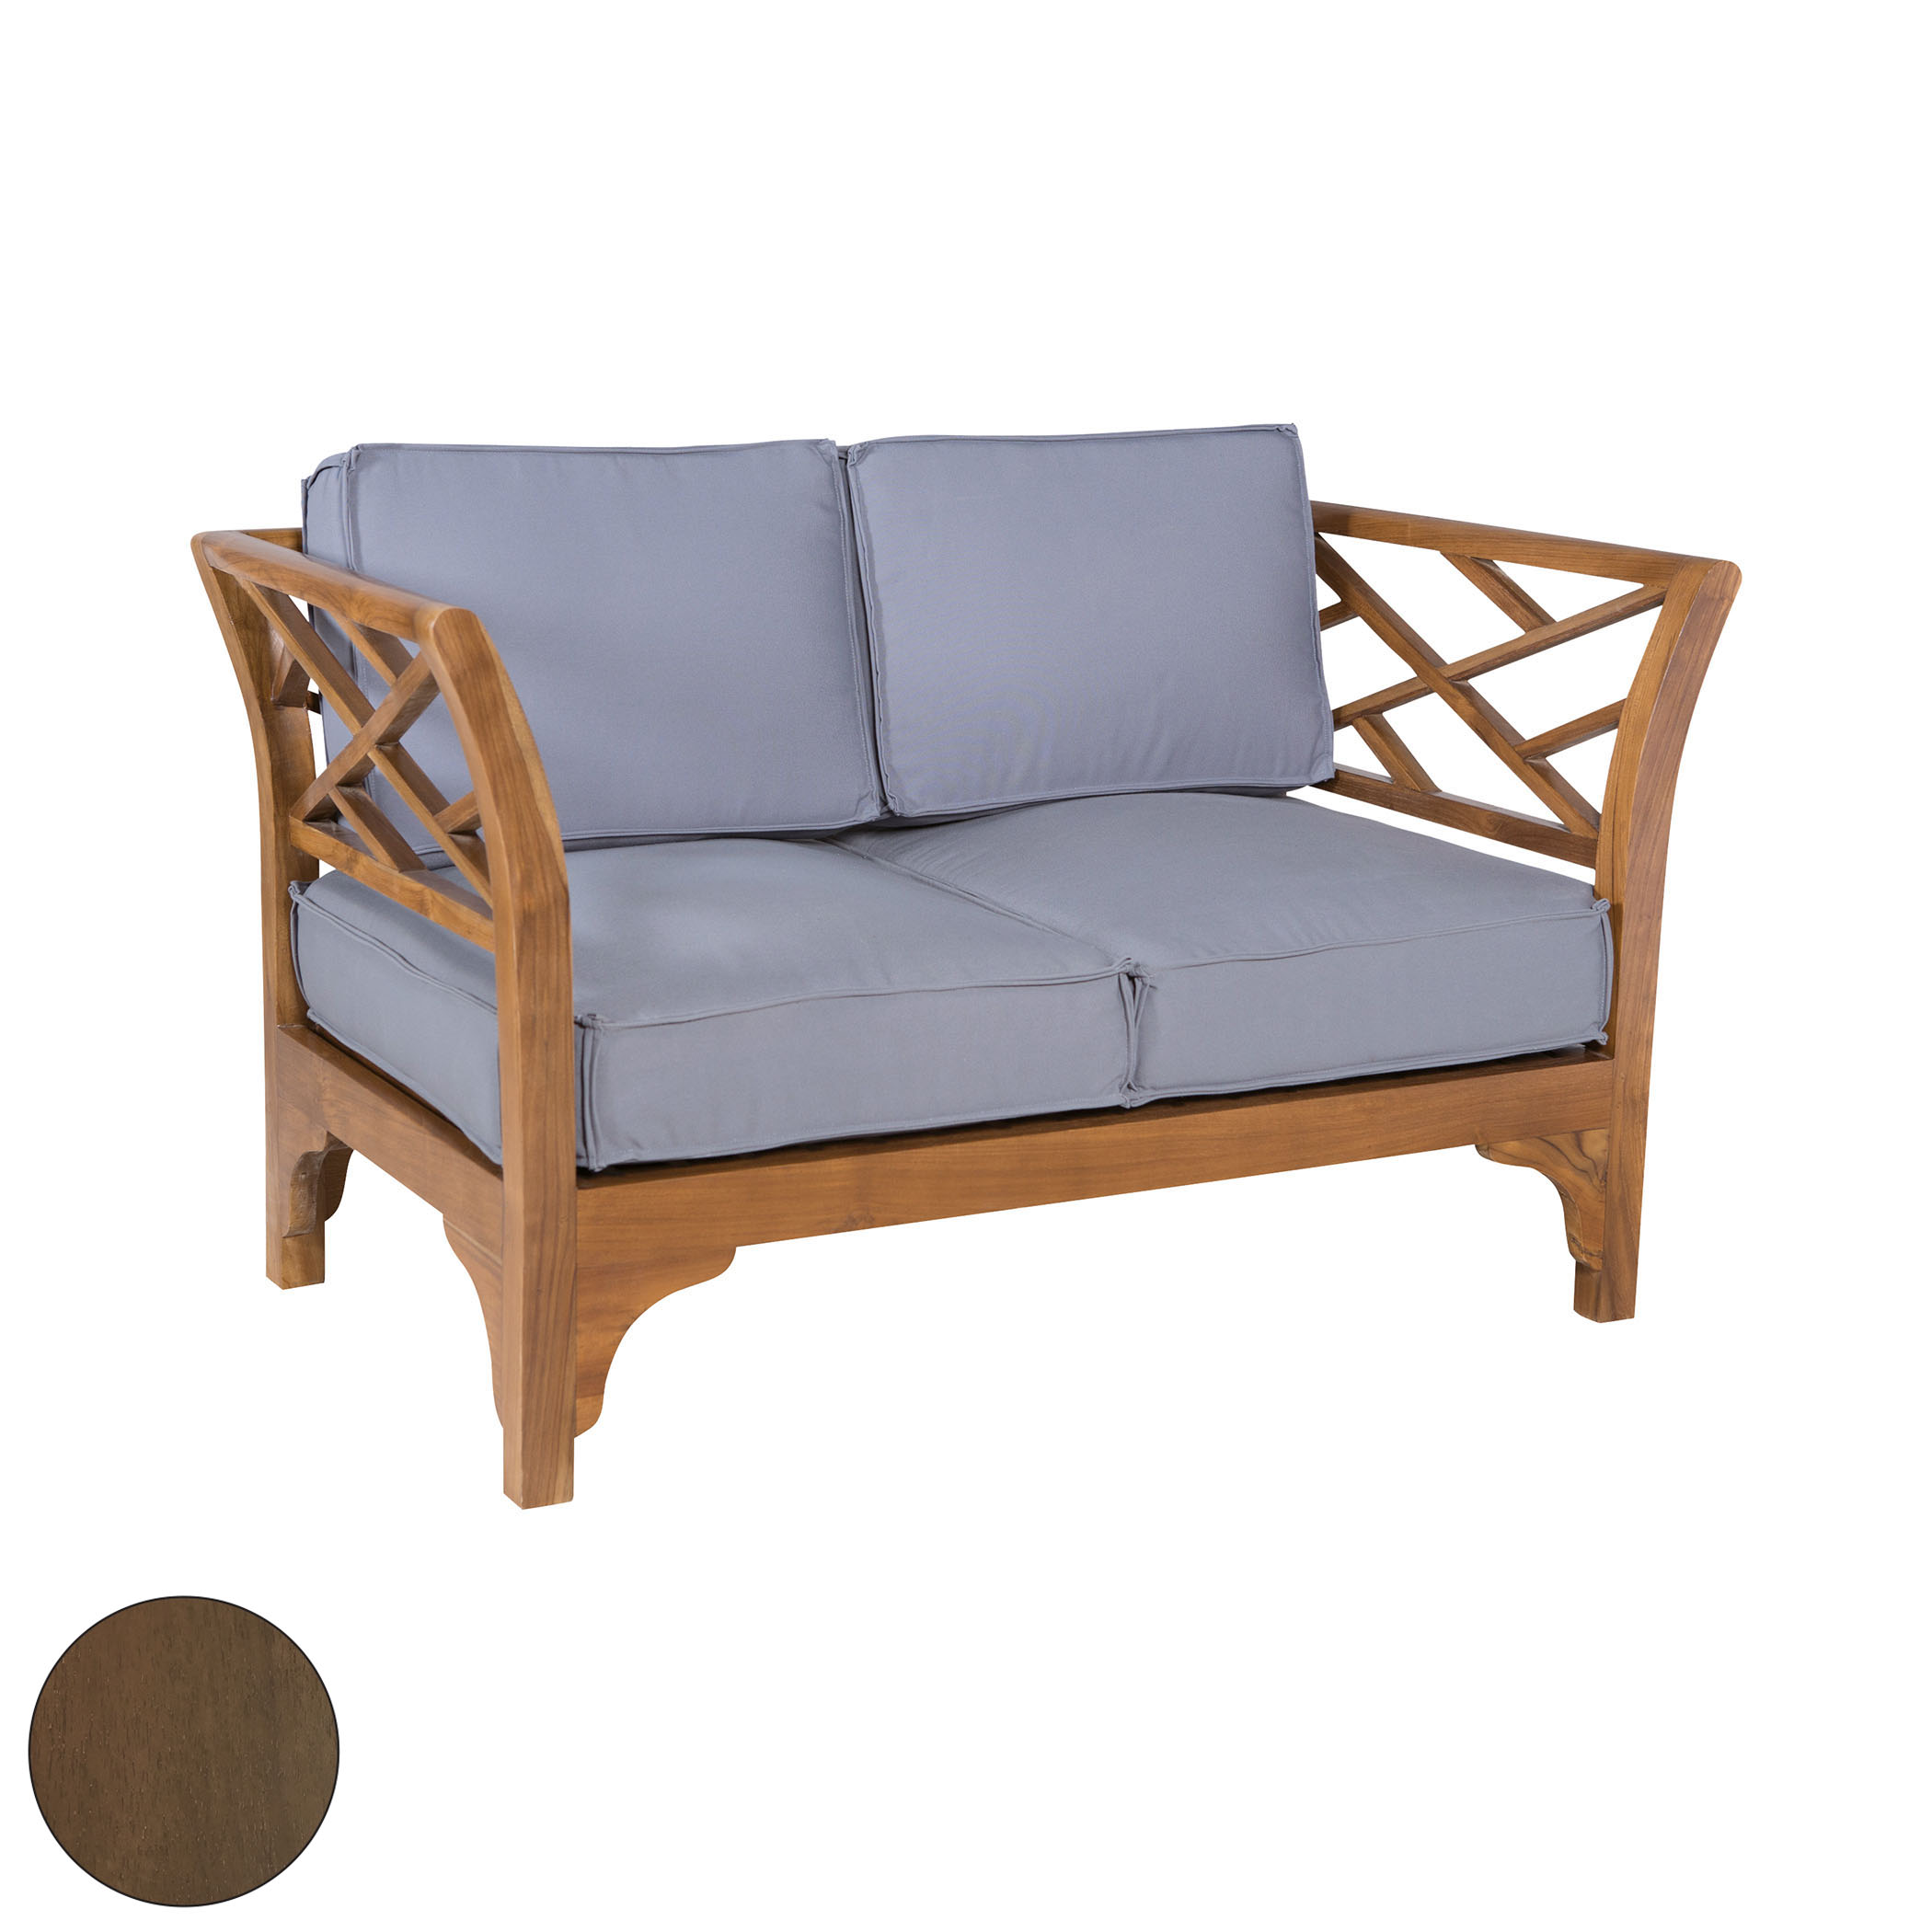 Patio Branch Love Seat 6517504BU | ELK Home